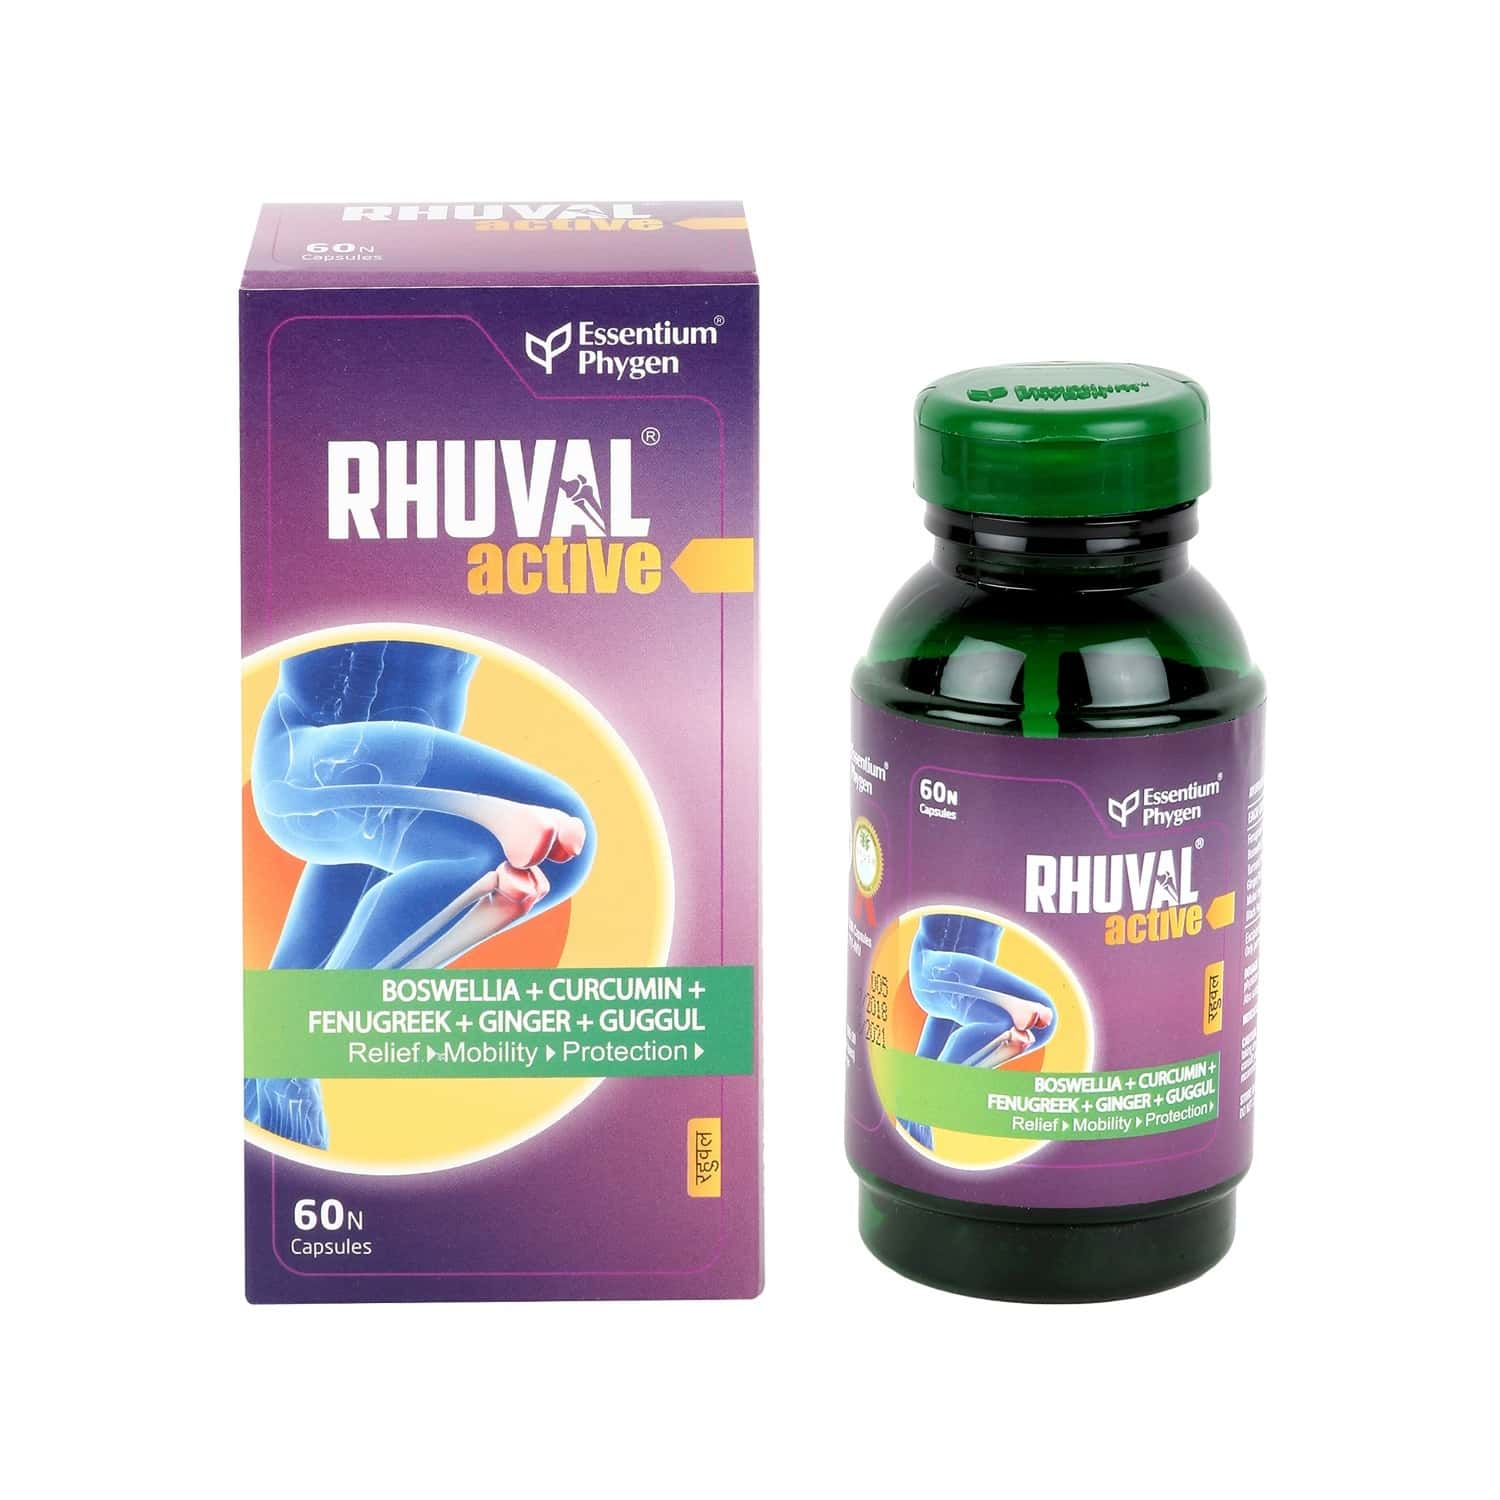 Rhuval Active Capsules For Inflammation & Joint Pain Relief (60)